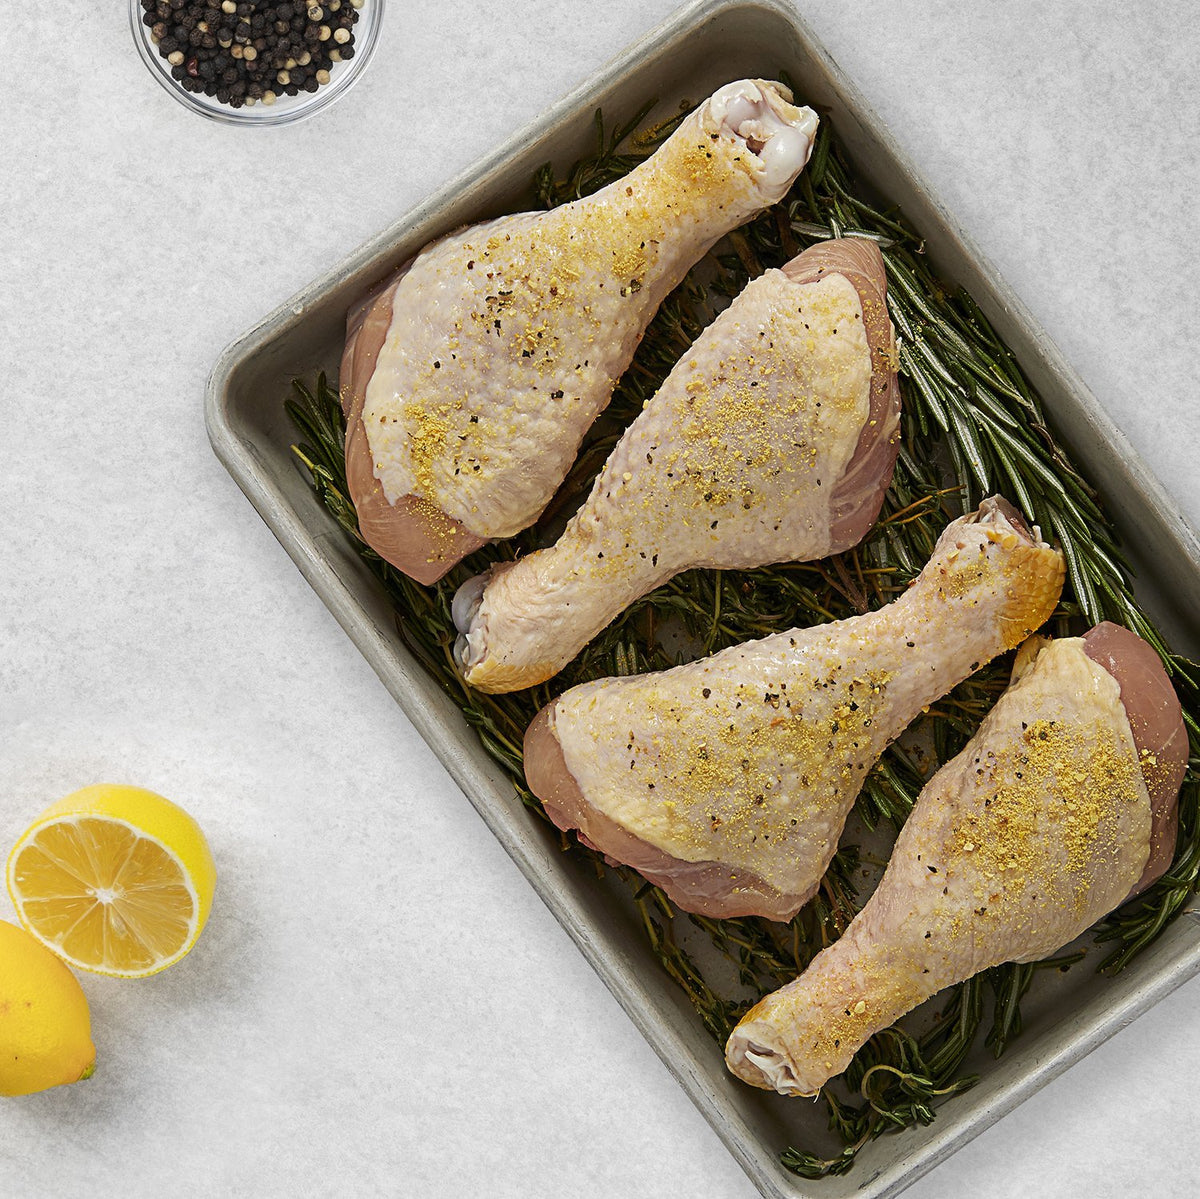 Our USDA Certified Organic Chicken Drumsticks come from chickens sustainably and humanely raised without hormones, antibiotics or steroids.